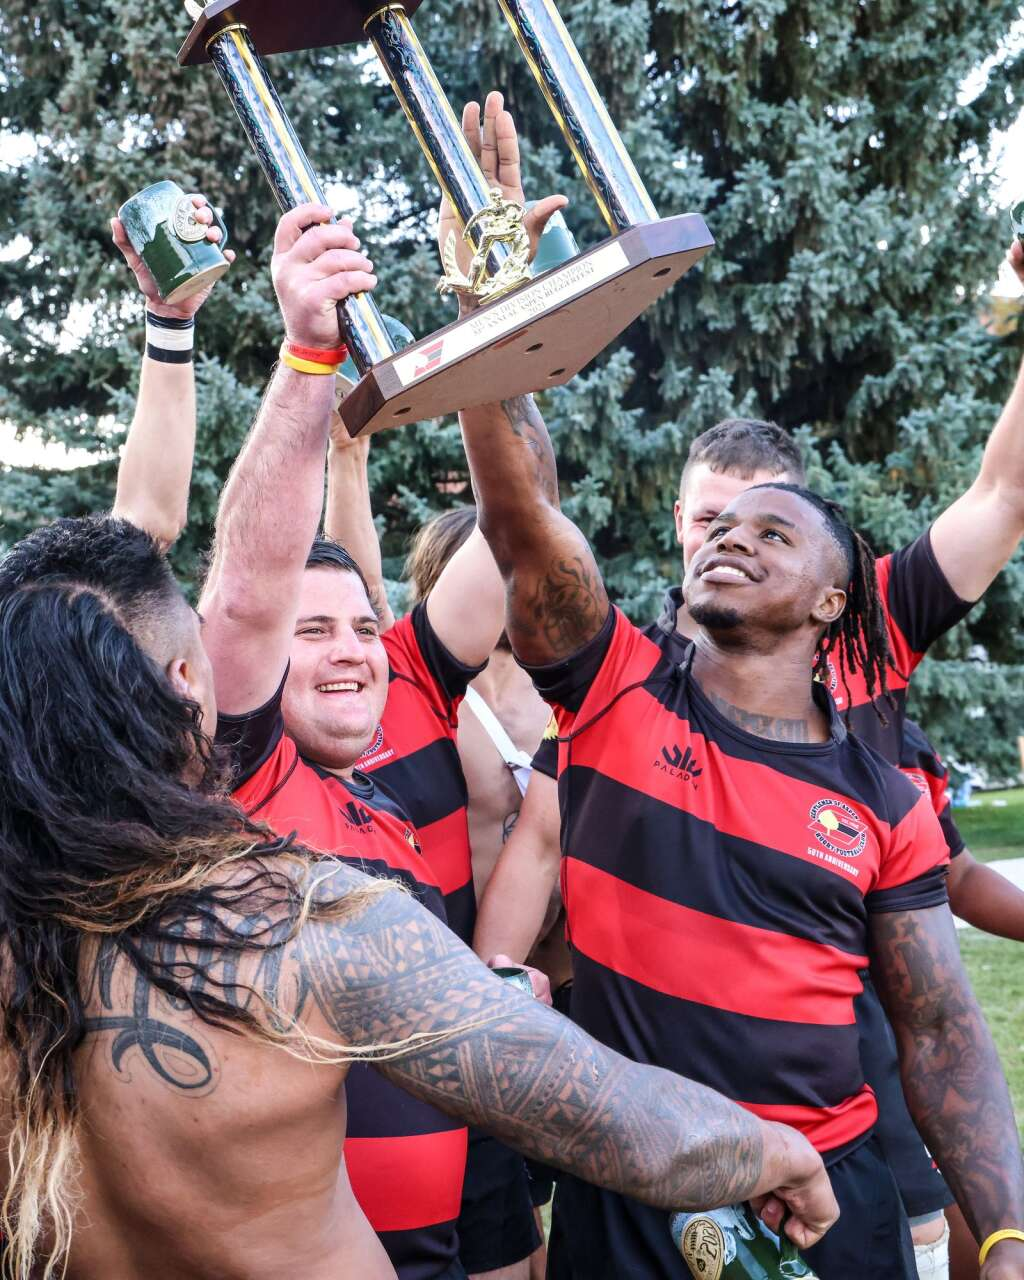 The Gentlemen of Aspen Rugby Club celebrates after beating the American Raptors to win Ruggerfest 53 on Sunday, Sept. 26, 2021, on Wagner Park in downtown Aspen. Photo by Austin Colbert/The Aspen Times.